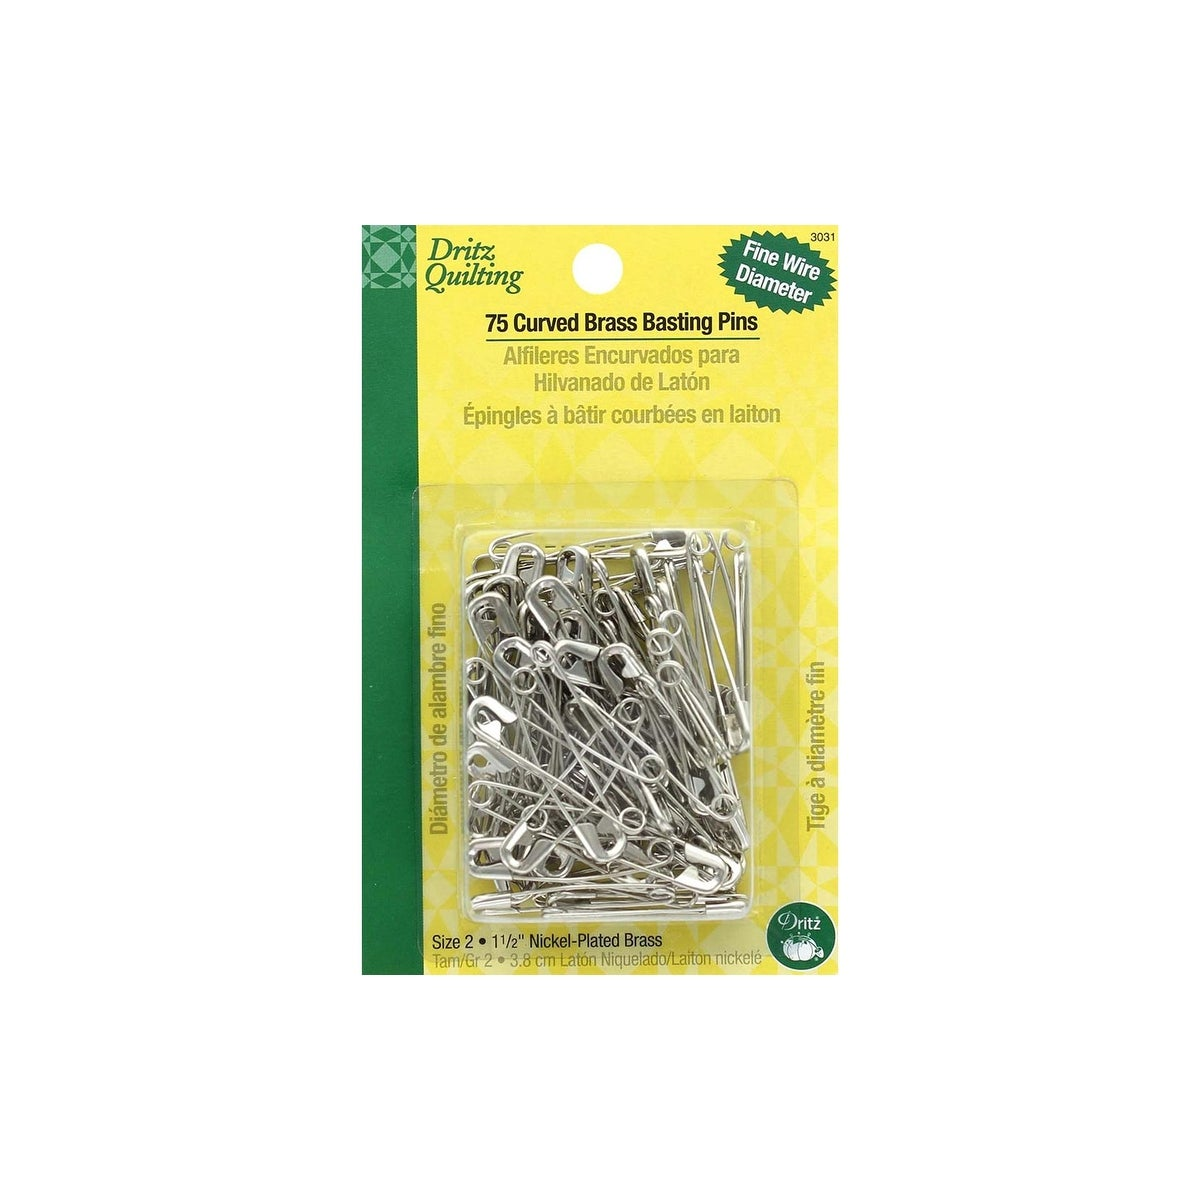 90//Pkg Dritz Quilting Curved Safety Pin Assortment-90//Pkg